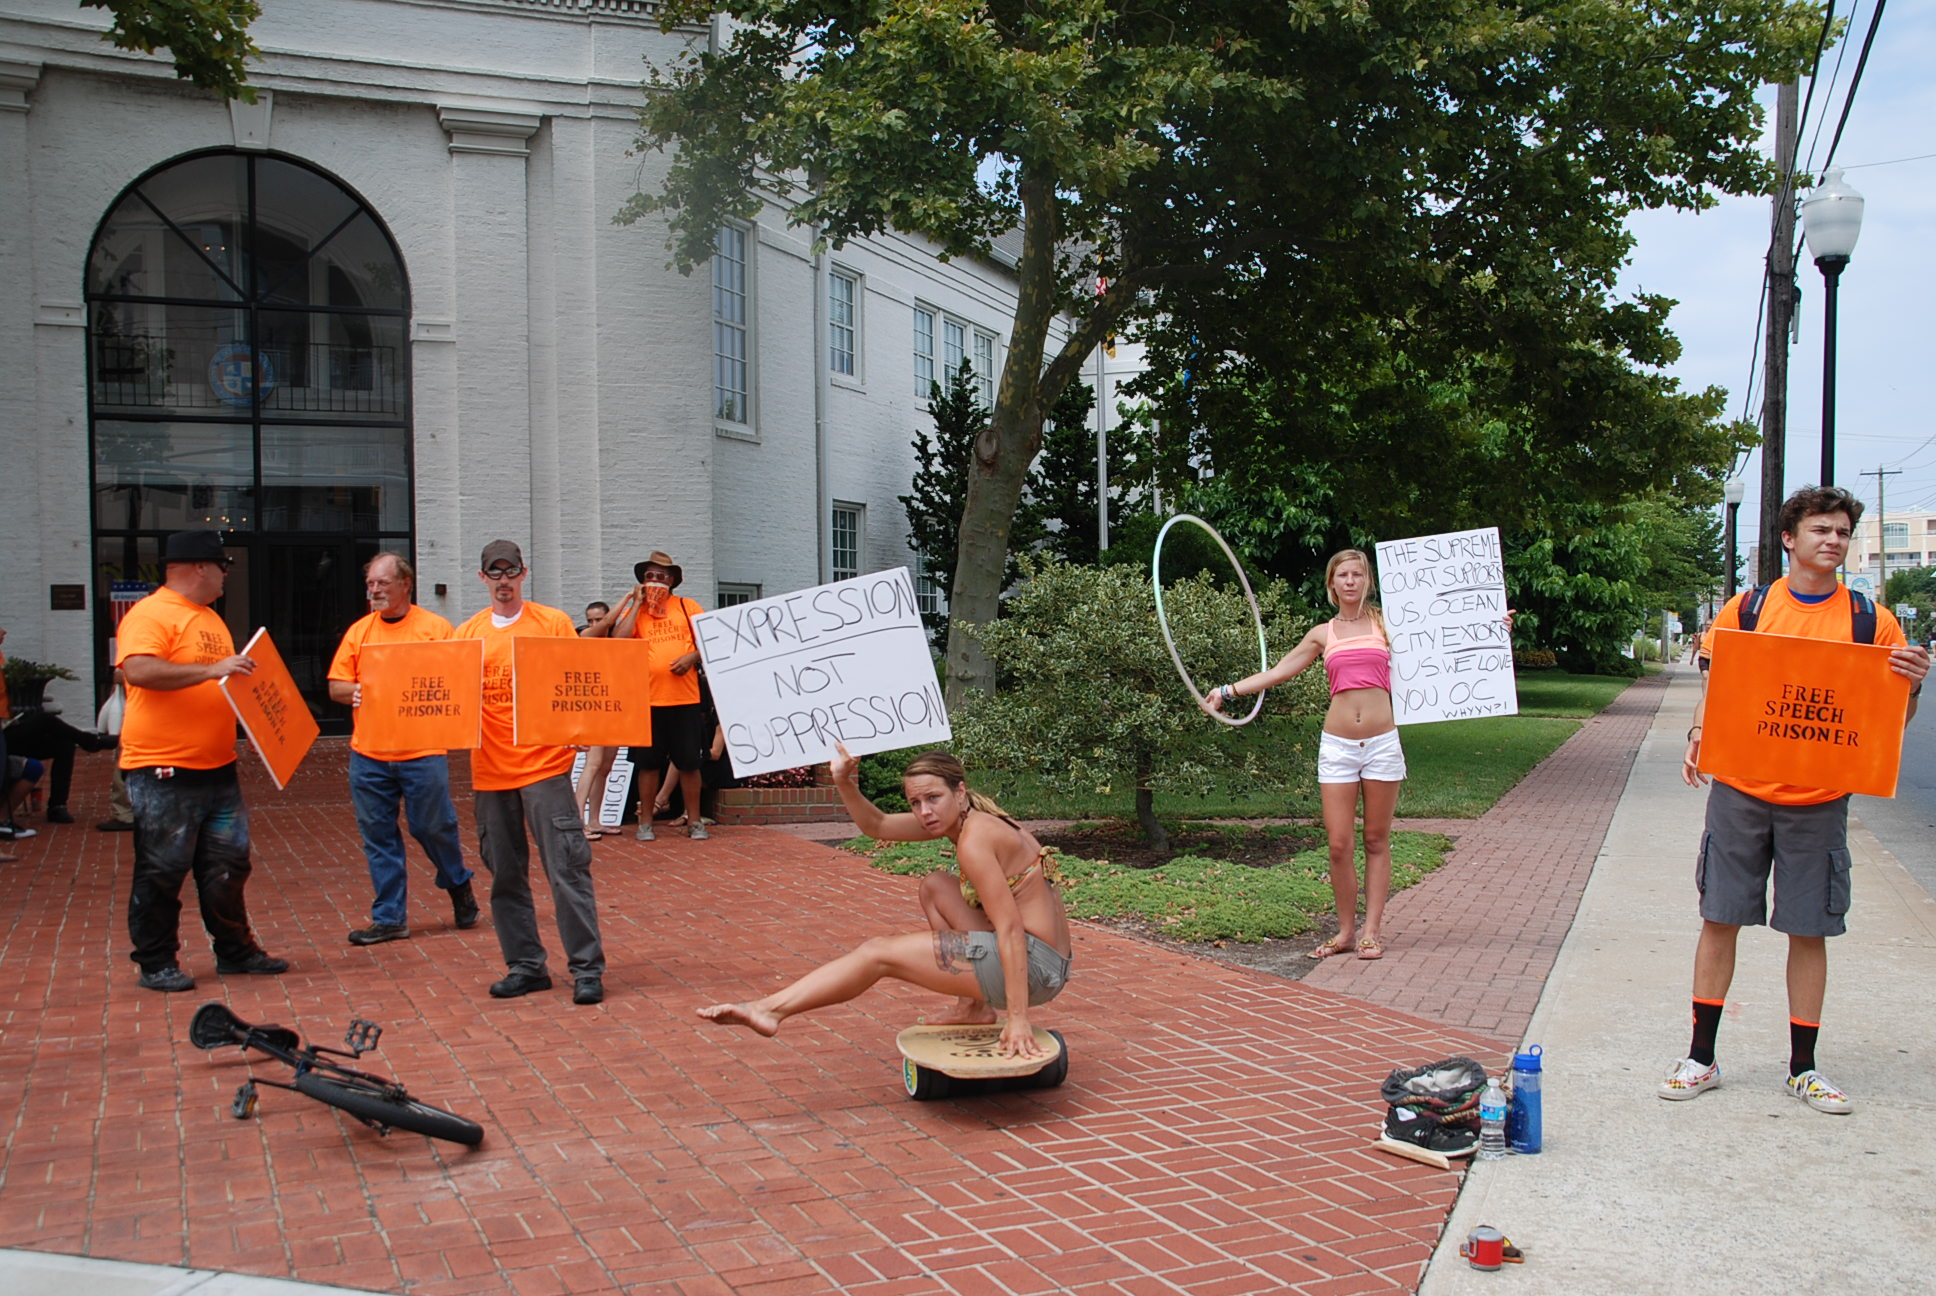 Street performers are shown protesting outside of City Hall last month. Photo by Joanne Shriner